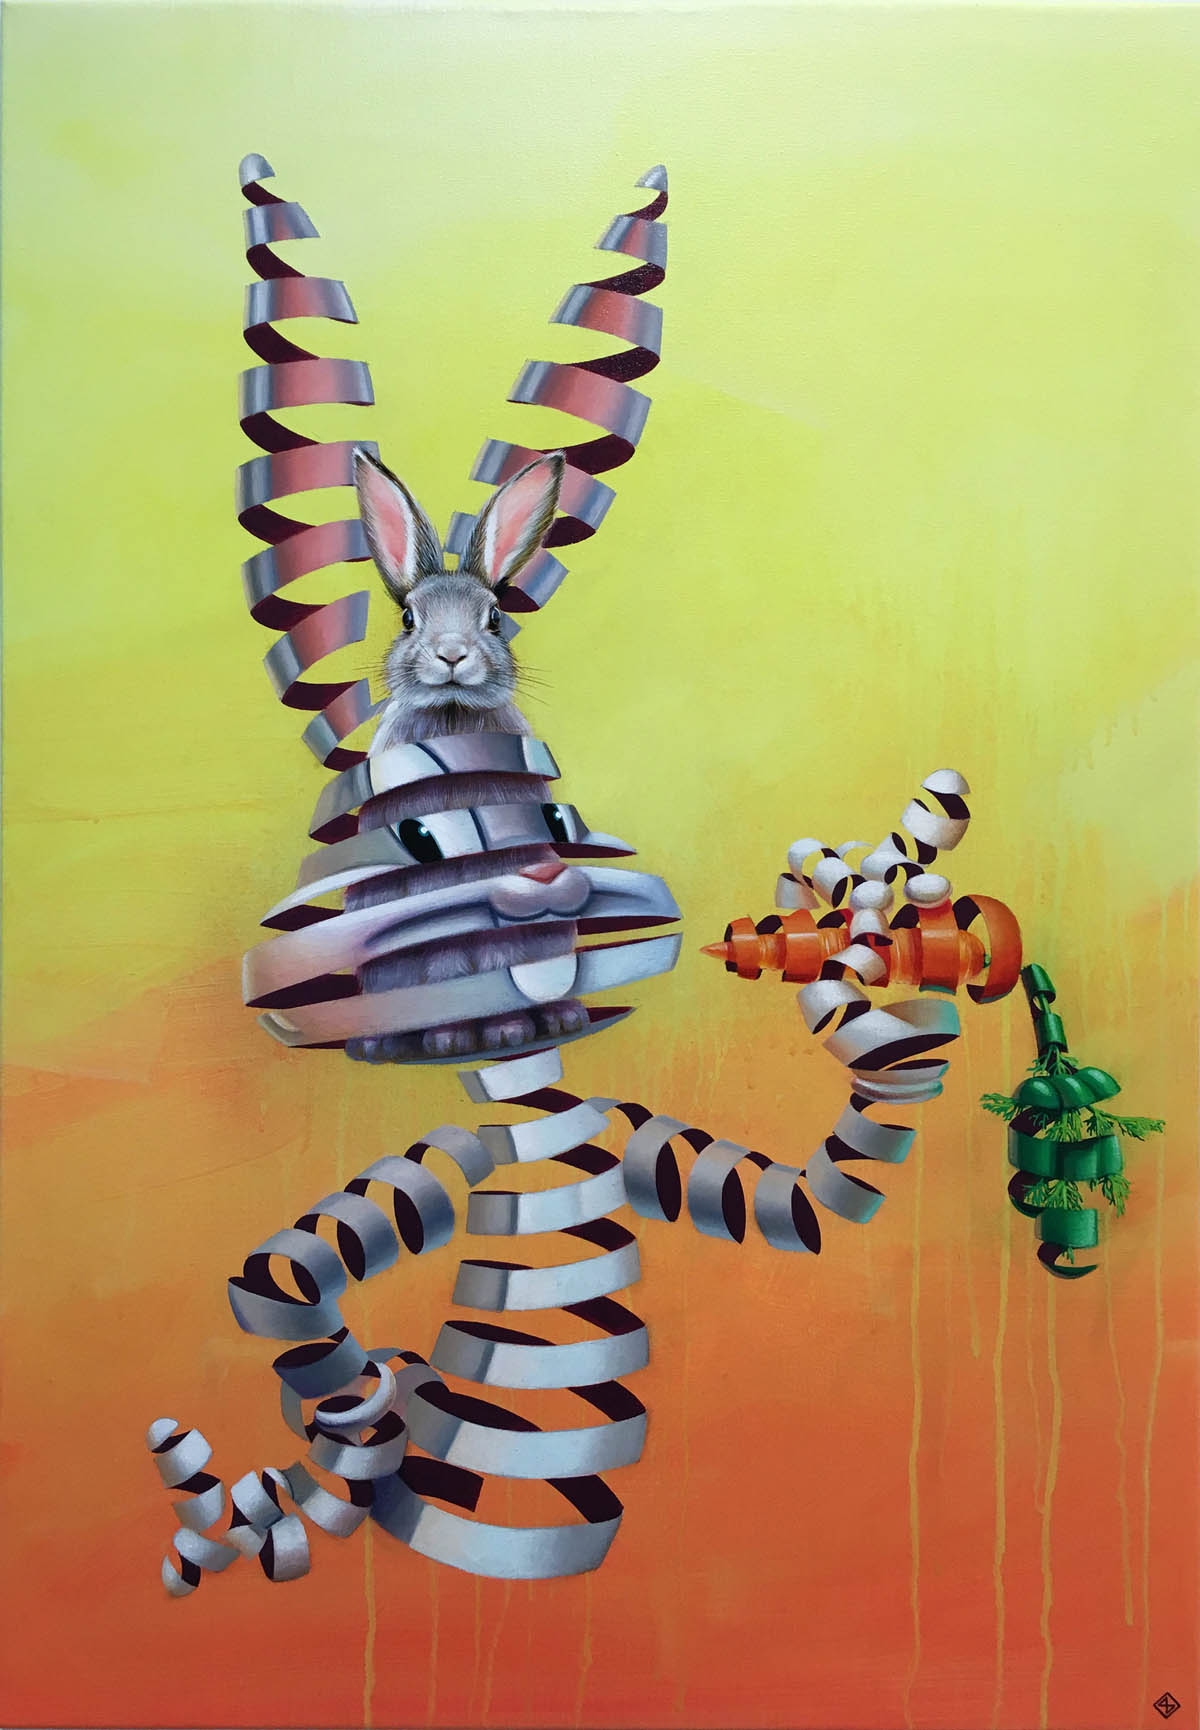 creative surreal paintings ideas bugs bunny by stefan thelen